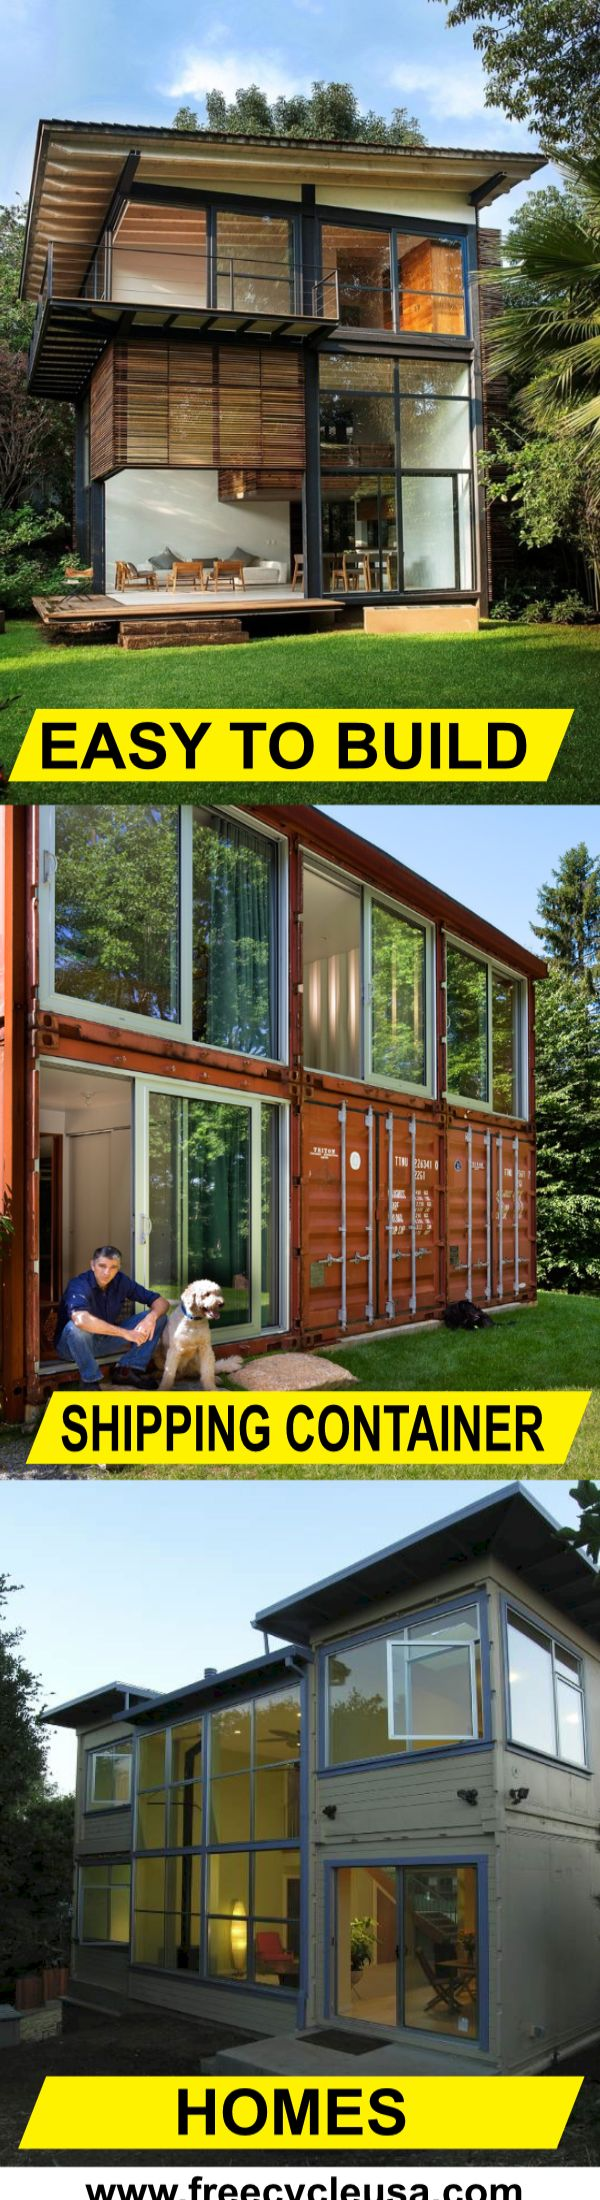 Lean how to build a Shipping Container Home with the best plans period.   http://www.amazon.co.uk/dp/B00YJUT56W